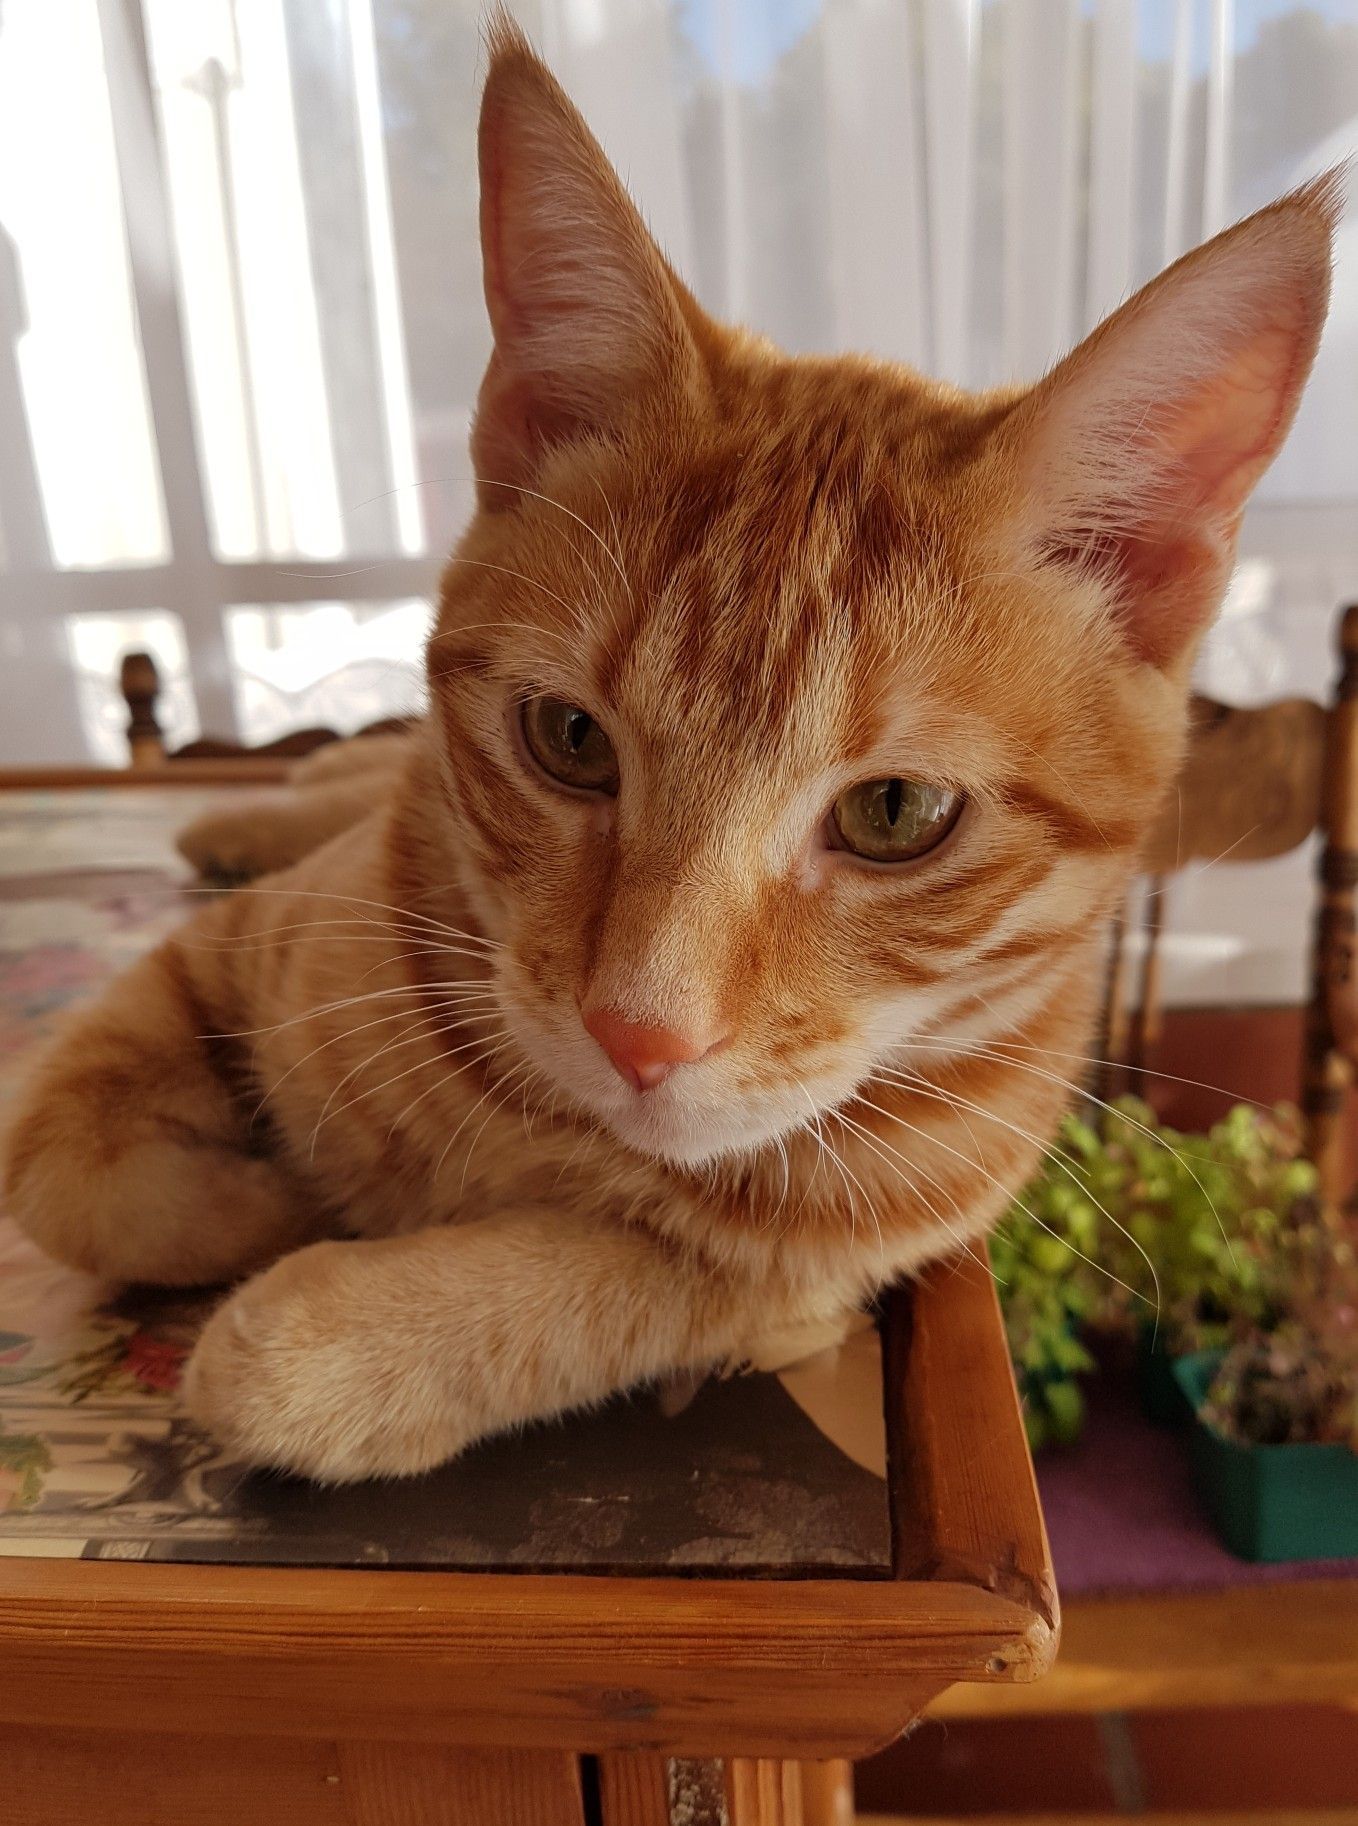 Pin By Evelda Kruger On My Ginger Babies Ginger Babies Kitty Cats